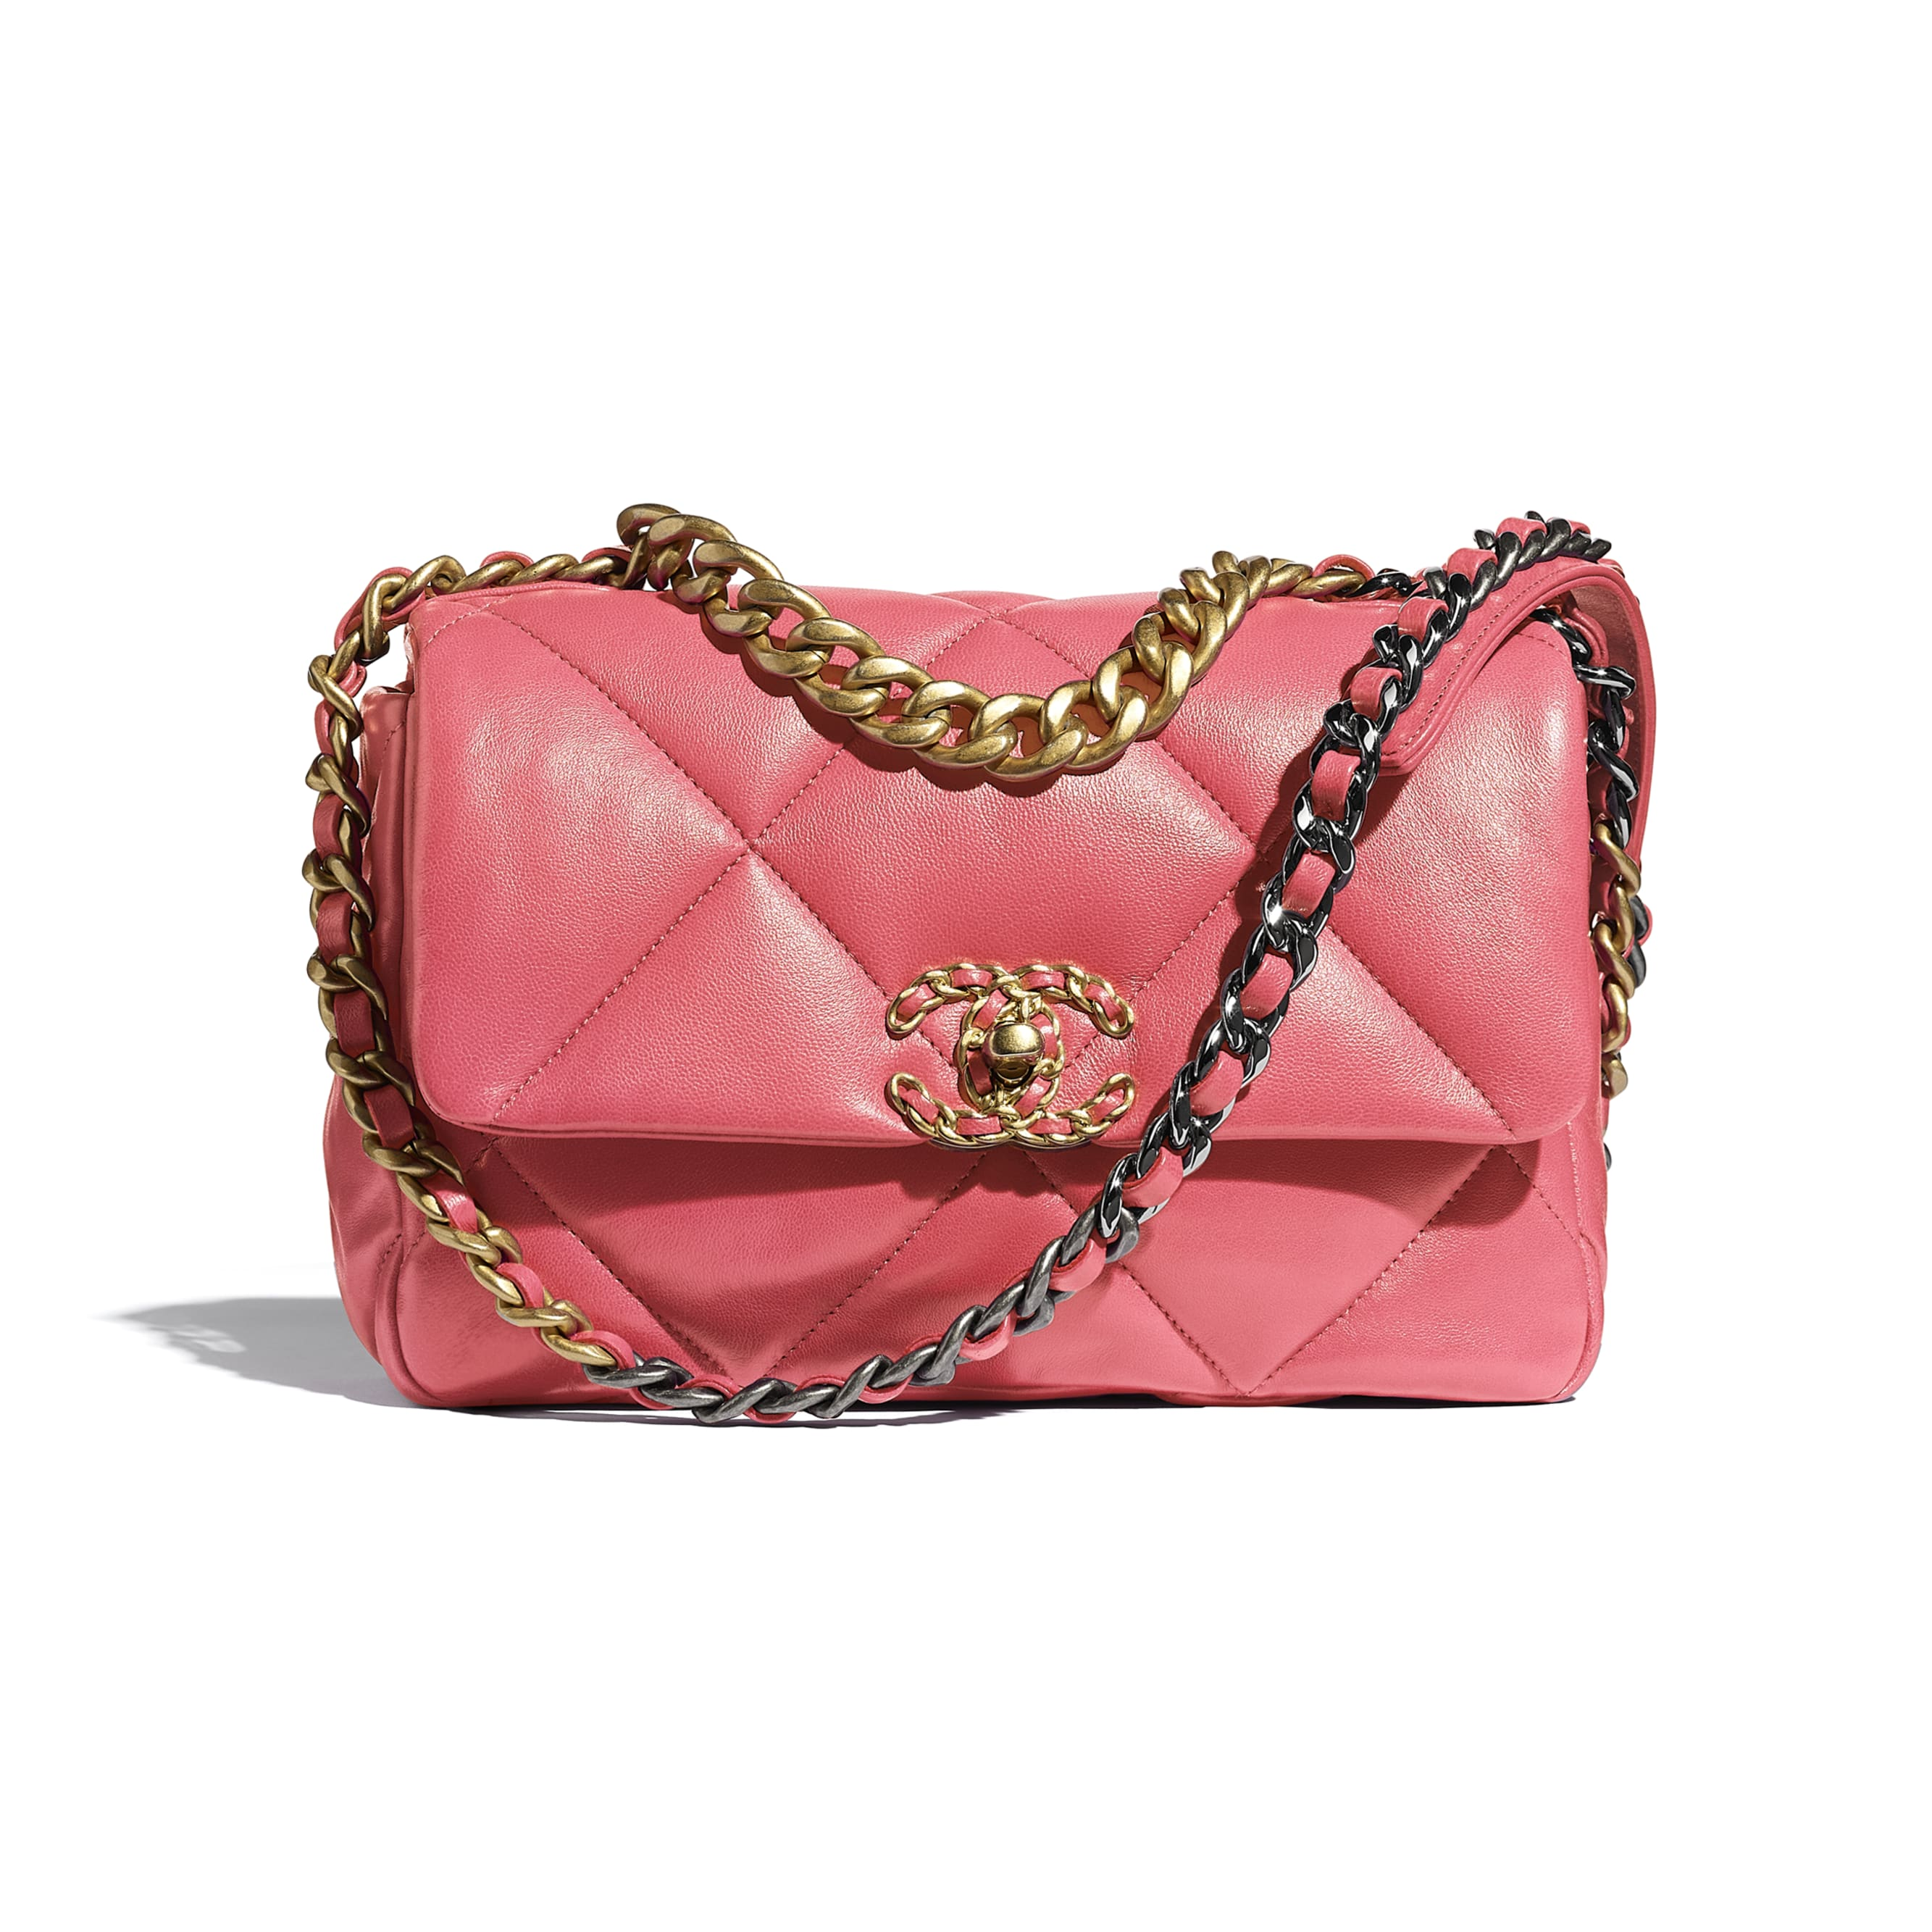 CHANEL 19 Flap Bag - Coral - Lambskin, Gold-Tone, Silver-Tone & Ruthenium-Finish Metal - CHANEL - Default view - see standard sized version